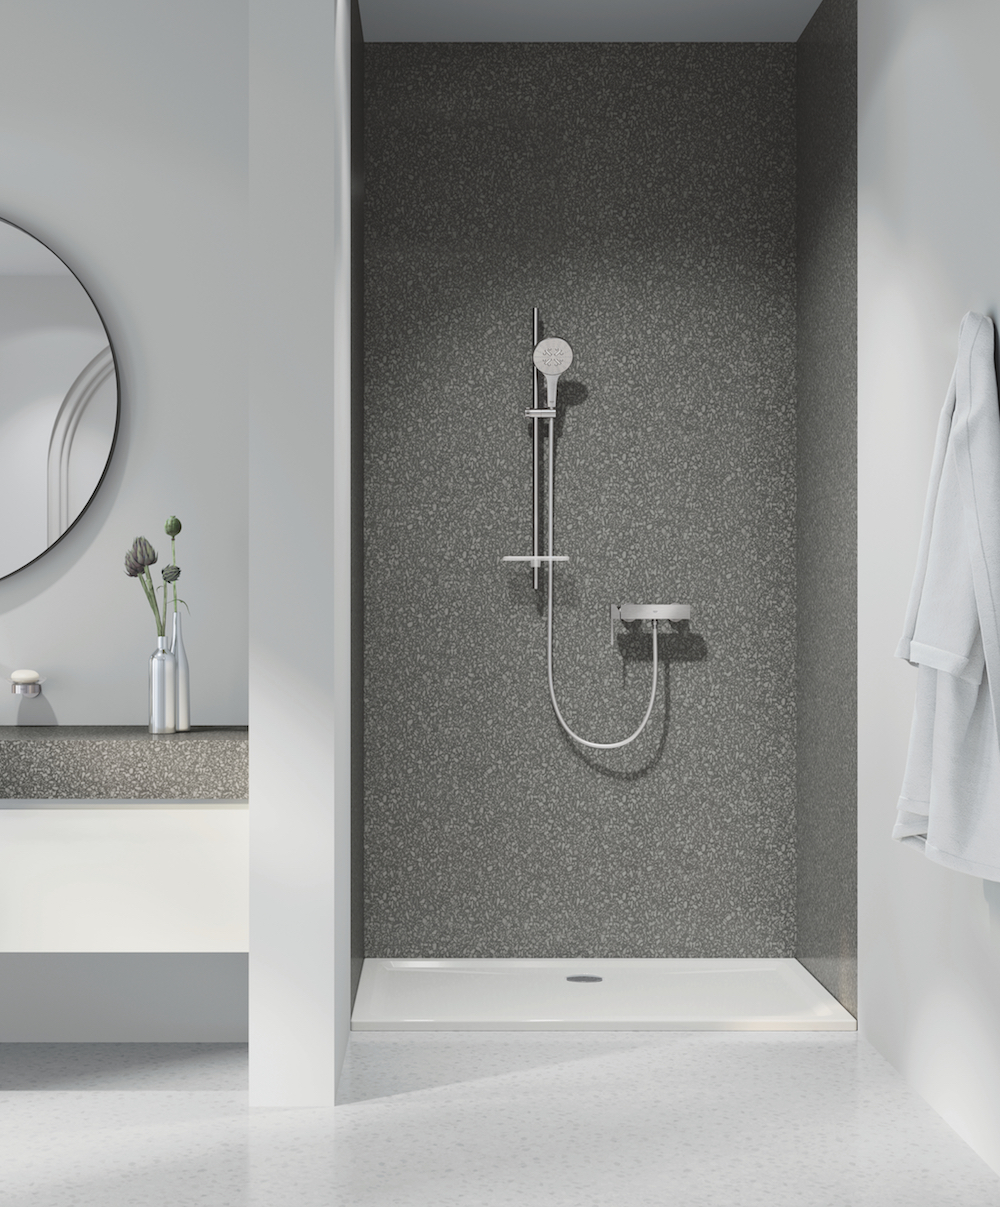 GROHE bathroom lifestyle shot featuring brassware from GROHE's Plus range and NEW Rainshower SmartActive 130 handshower